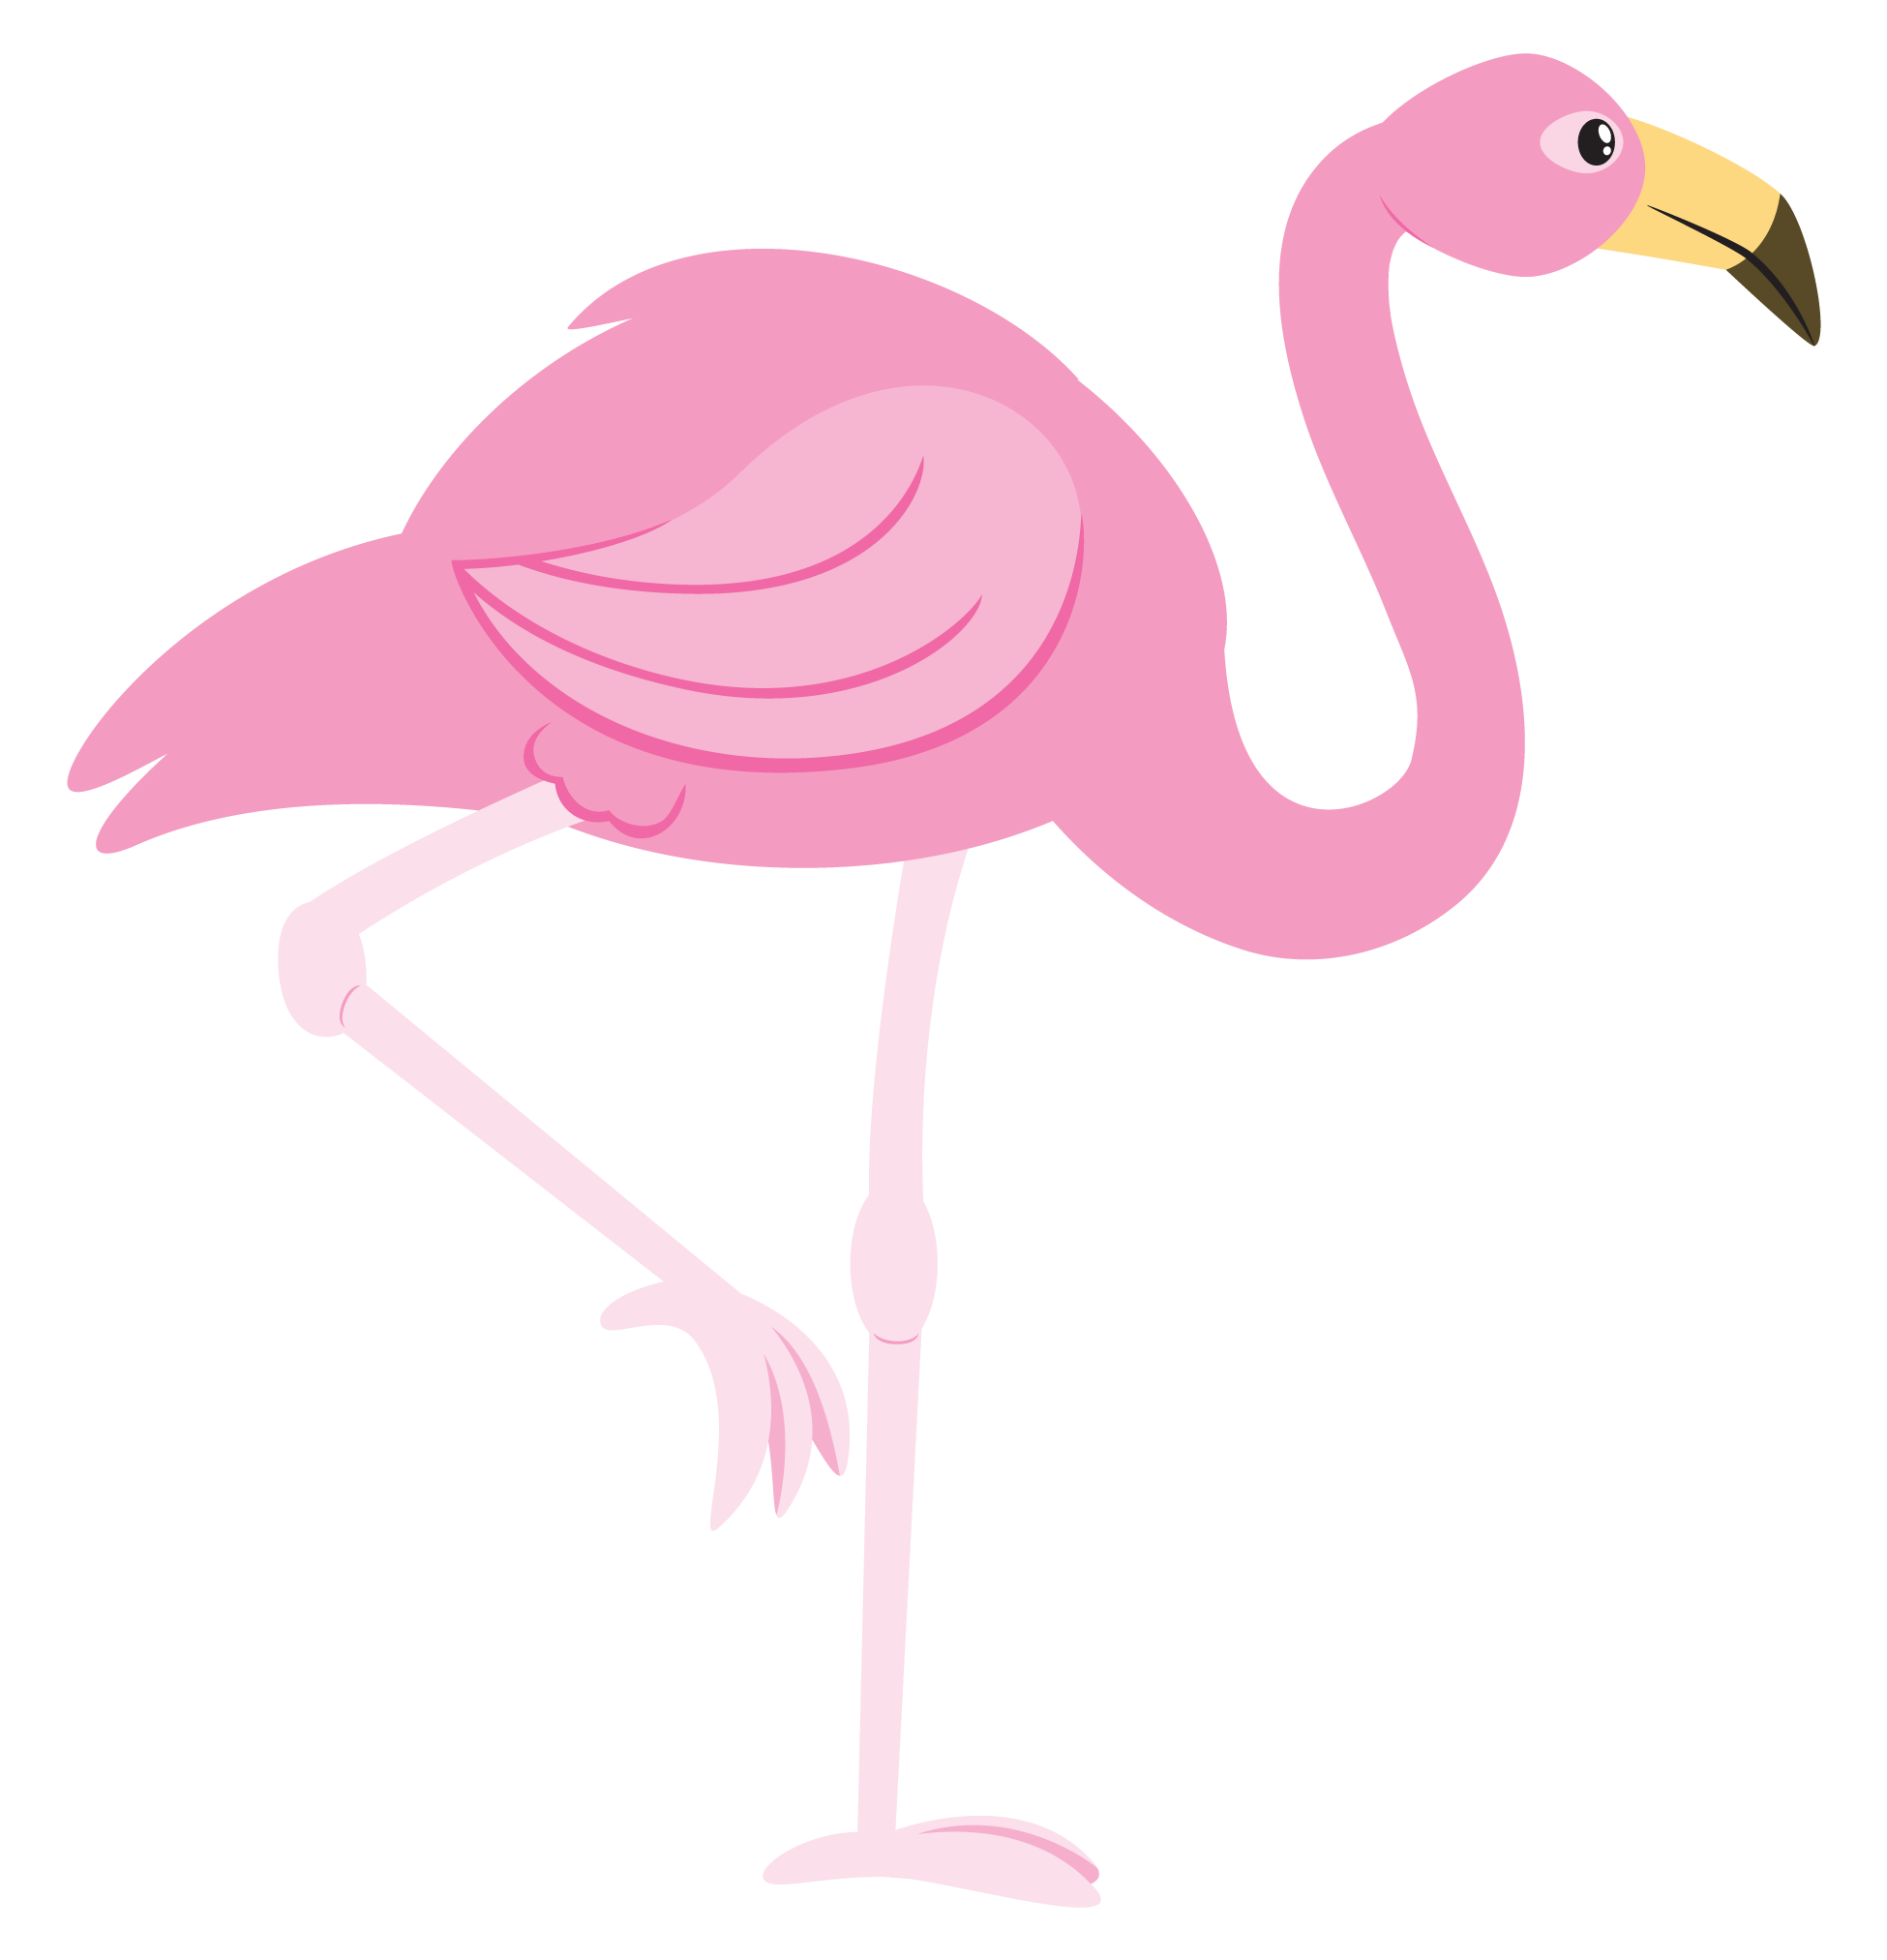 Flamingo clipart yard flamingo. Pink cartoon kid stuff